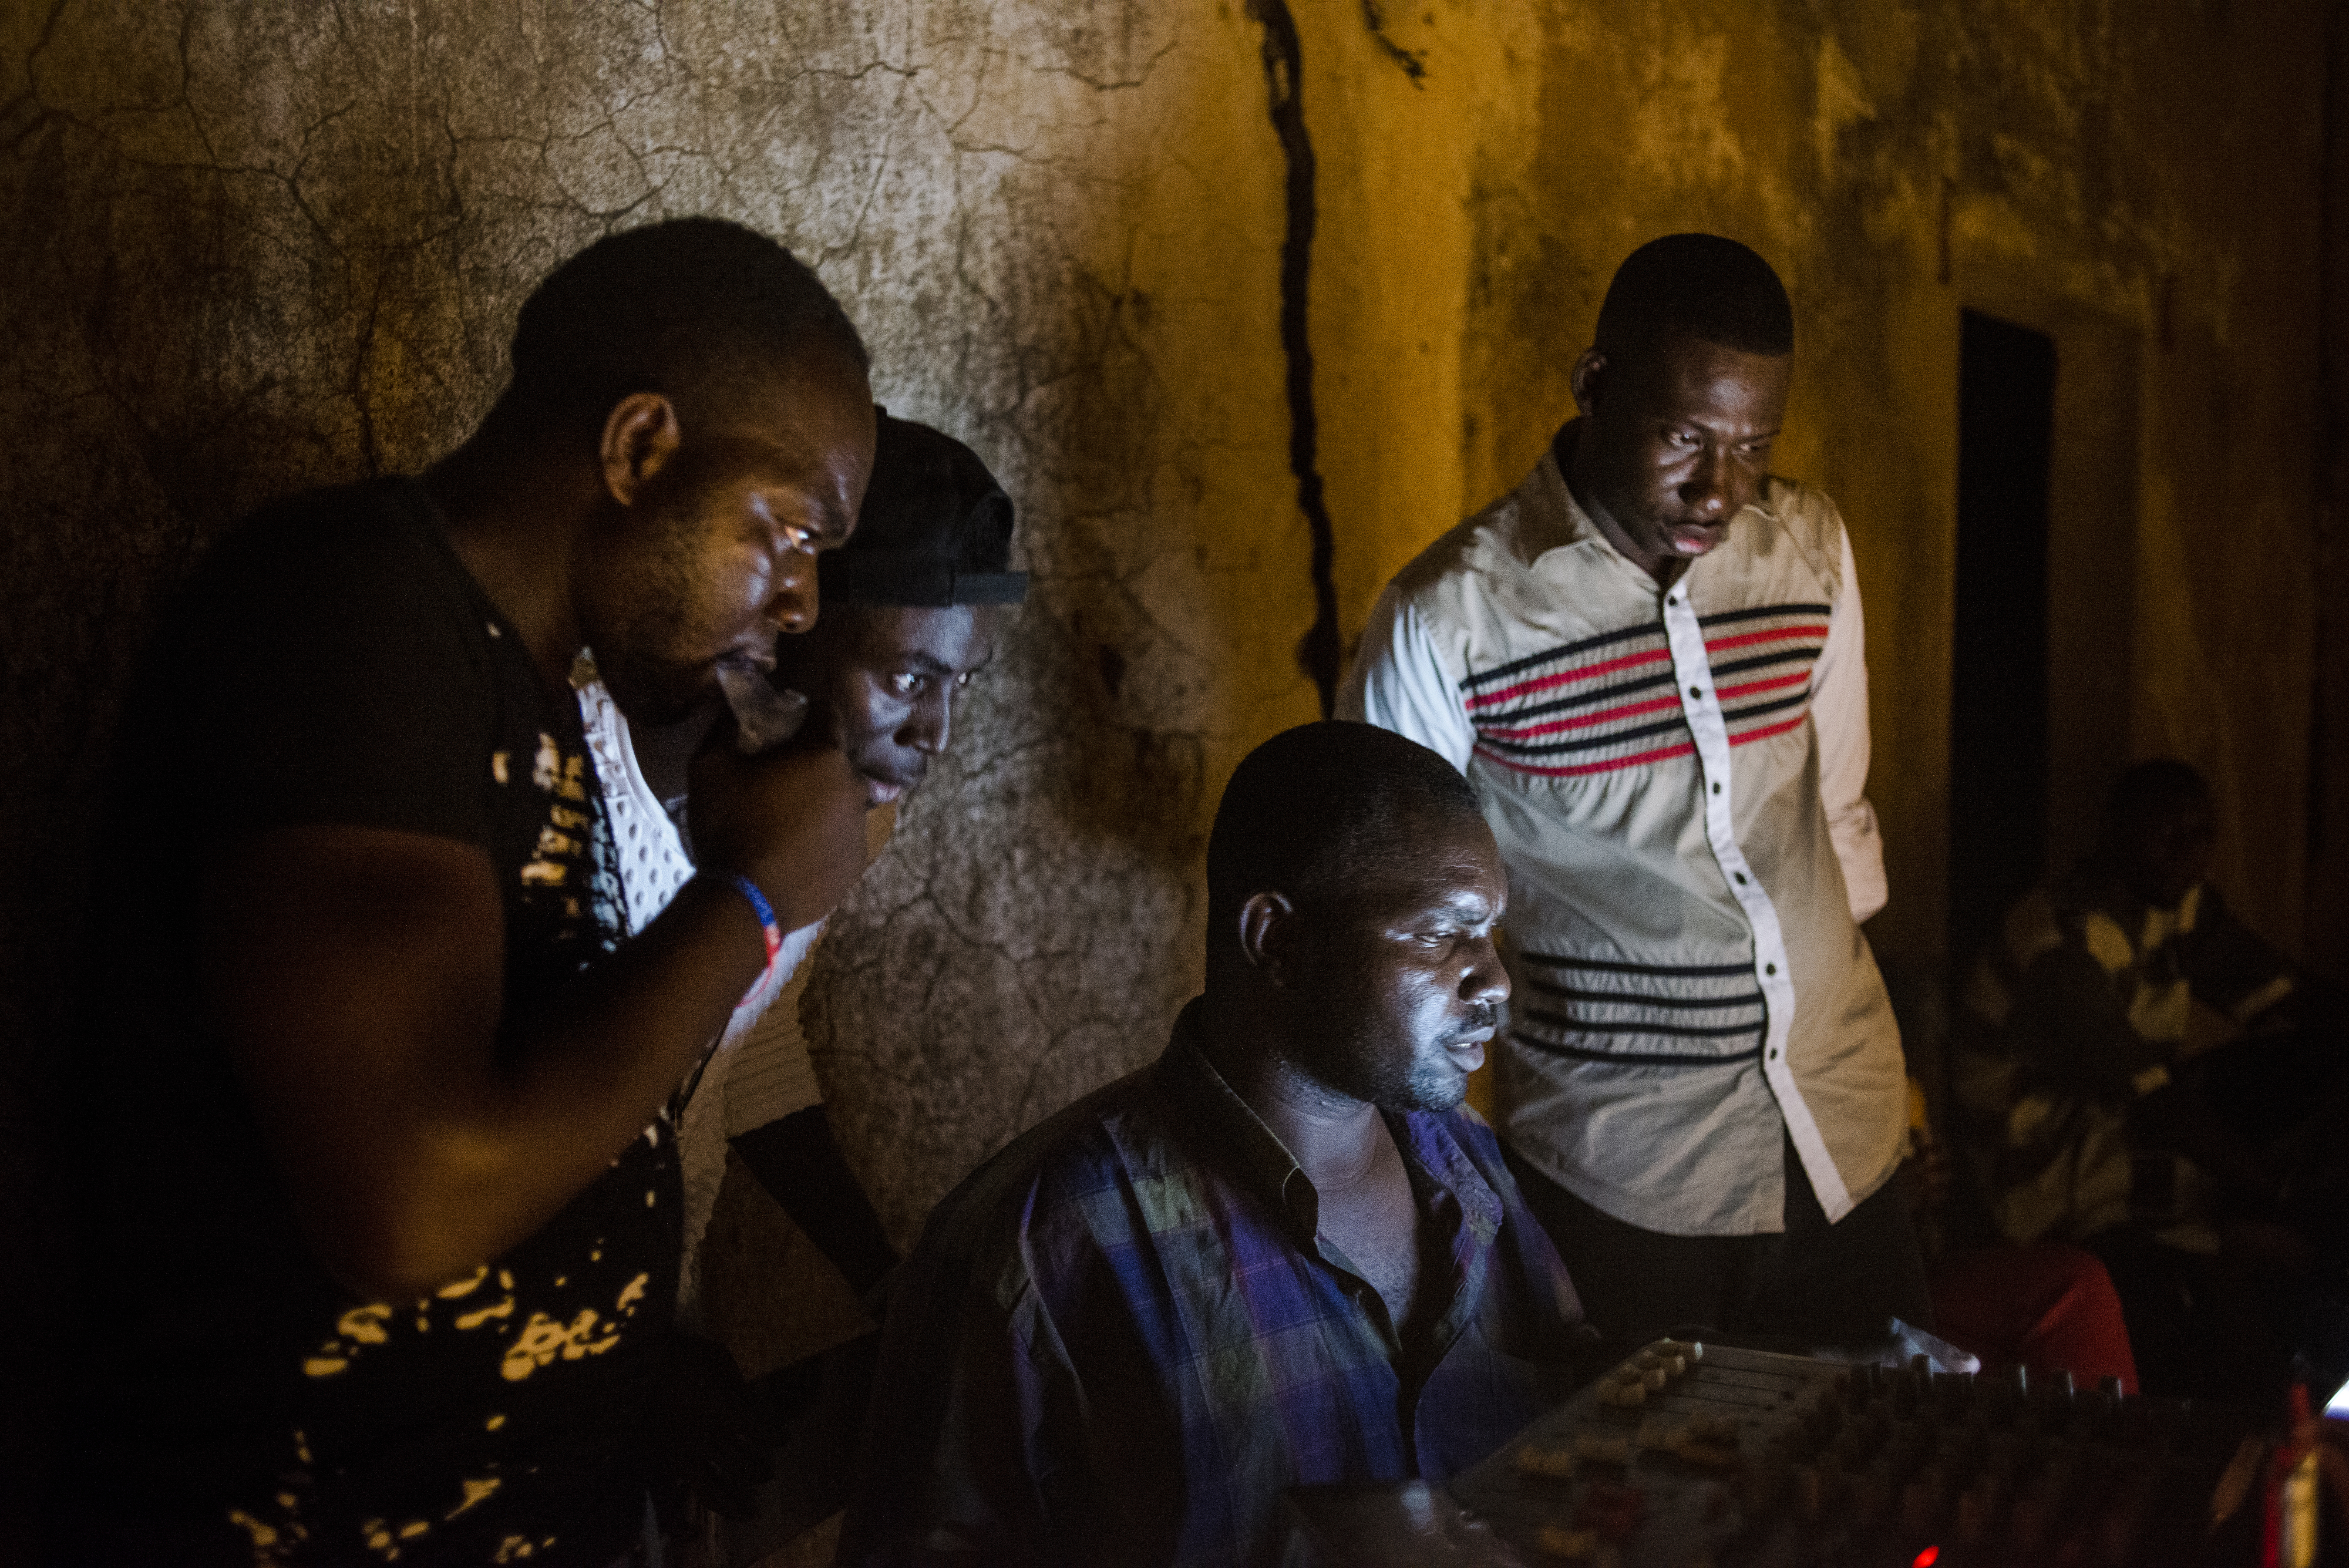 Concert organizers play music in-between performers on May 20, 2017 in Macina, Mali.